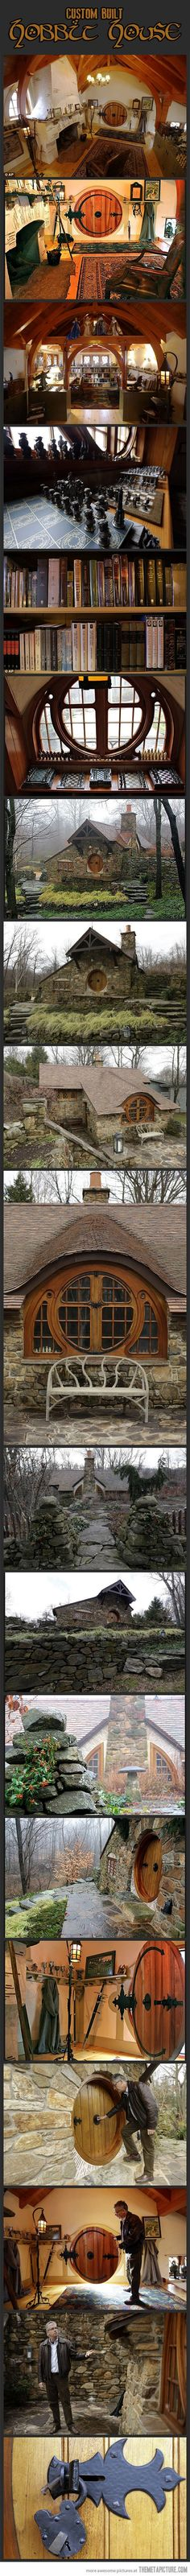 Custom built Hobbit house